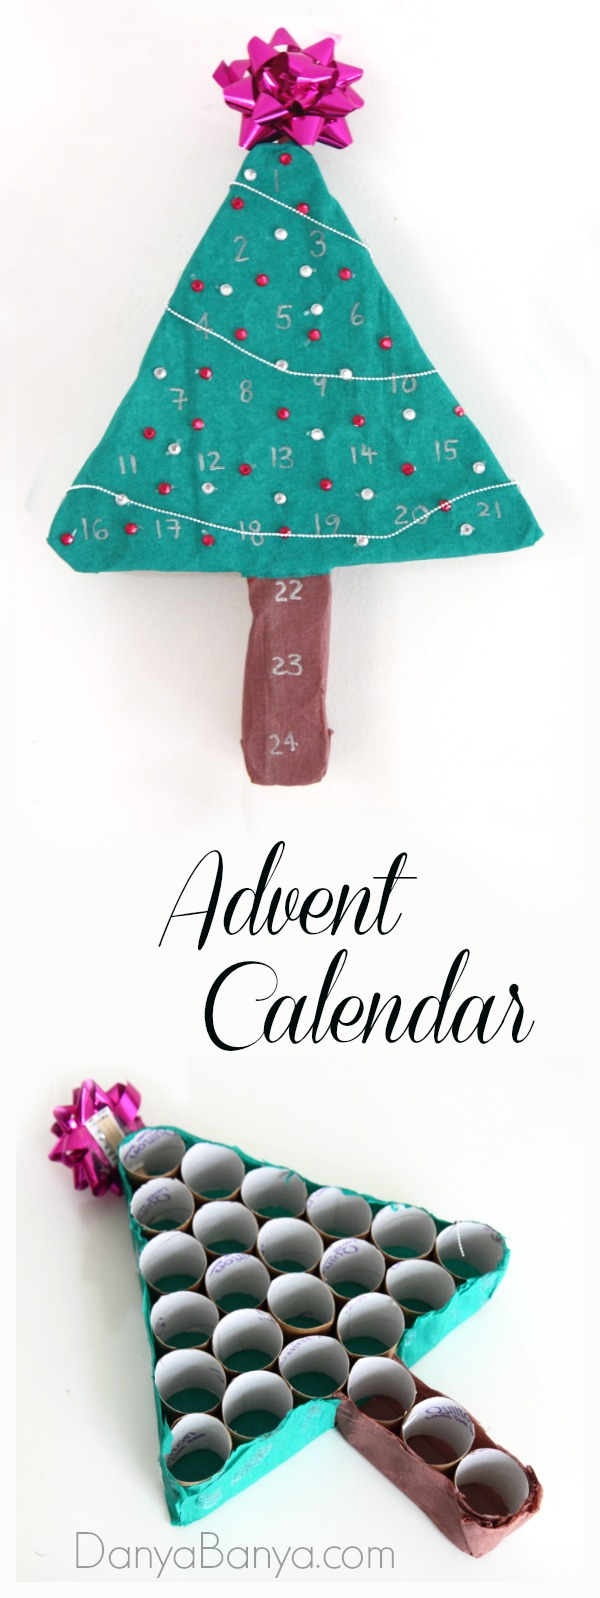 Advent Calendar ~ Danya Banya